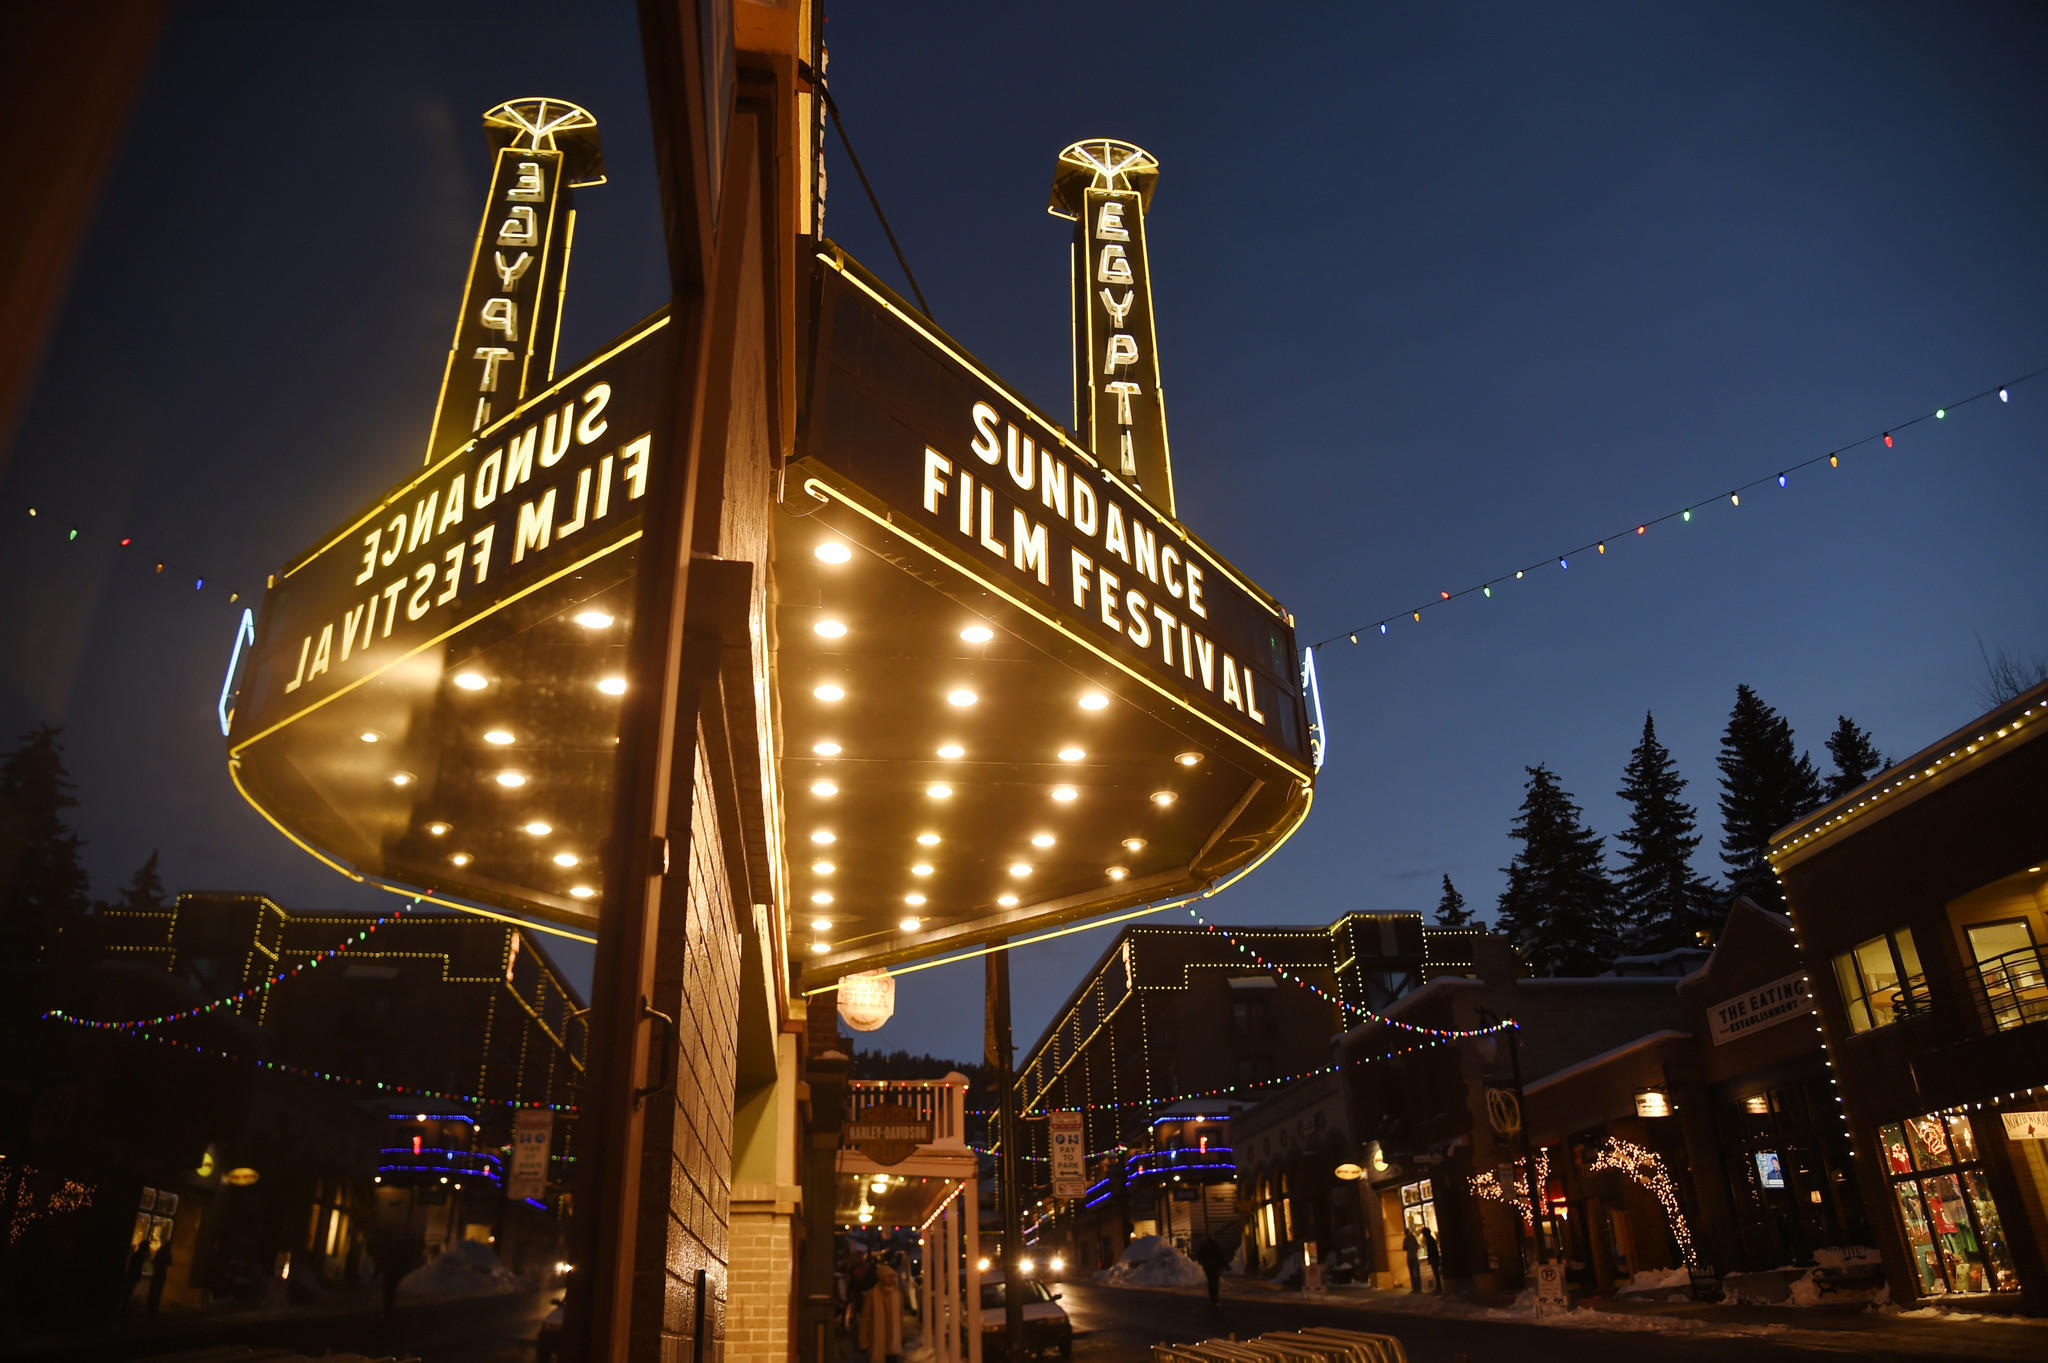 The Egyptian Theatre is lit up on the eve of the 2017 Sundance Film Festival on Wednesday, in Park City, Utah. (Chris Pizzello / Invision / AP)